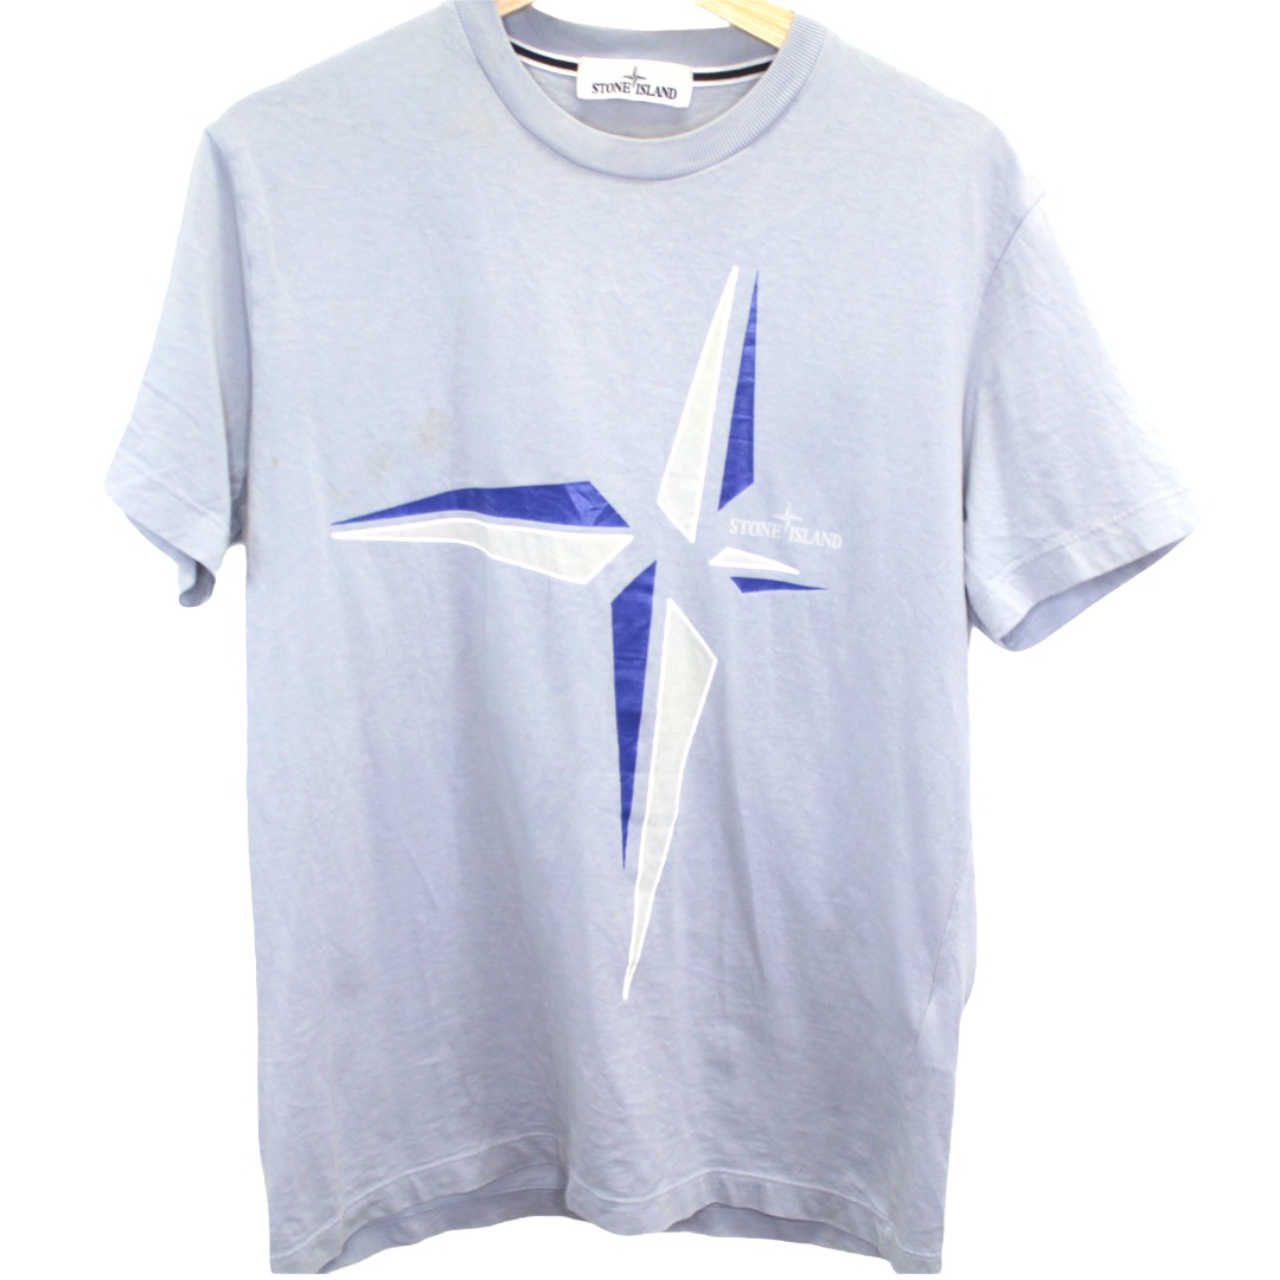 Product Image 1 - F124 Stone Island Spell Out